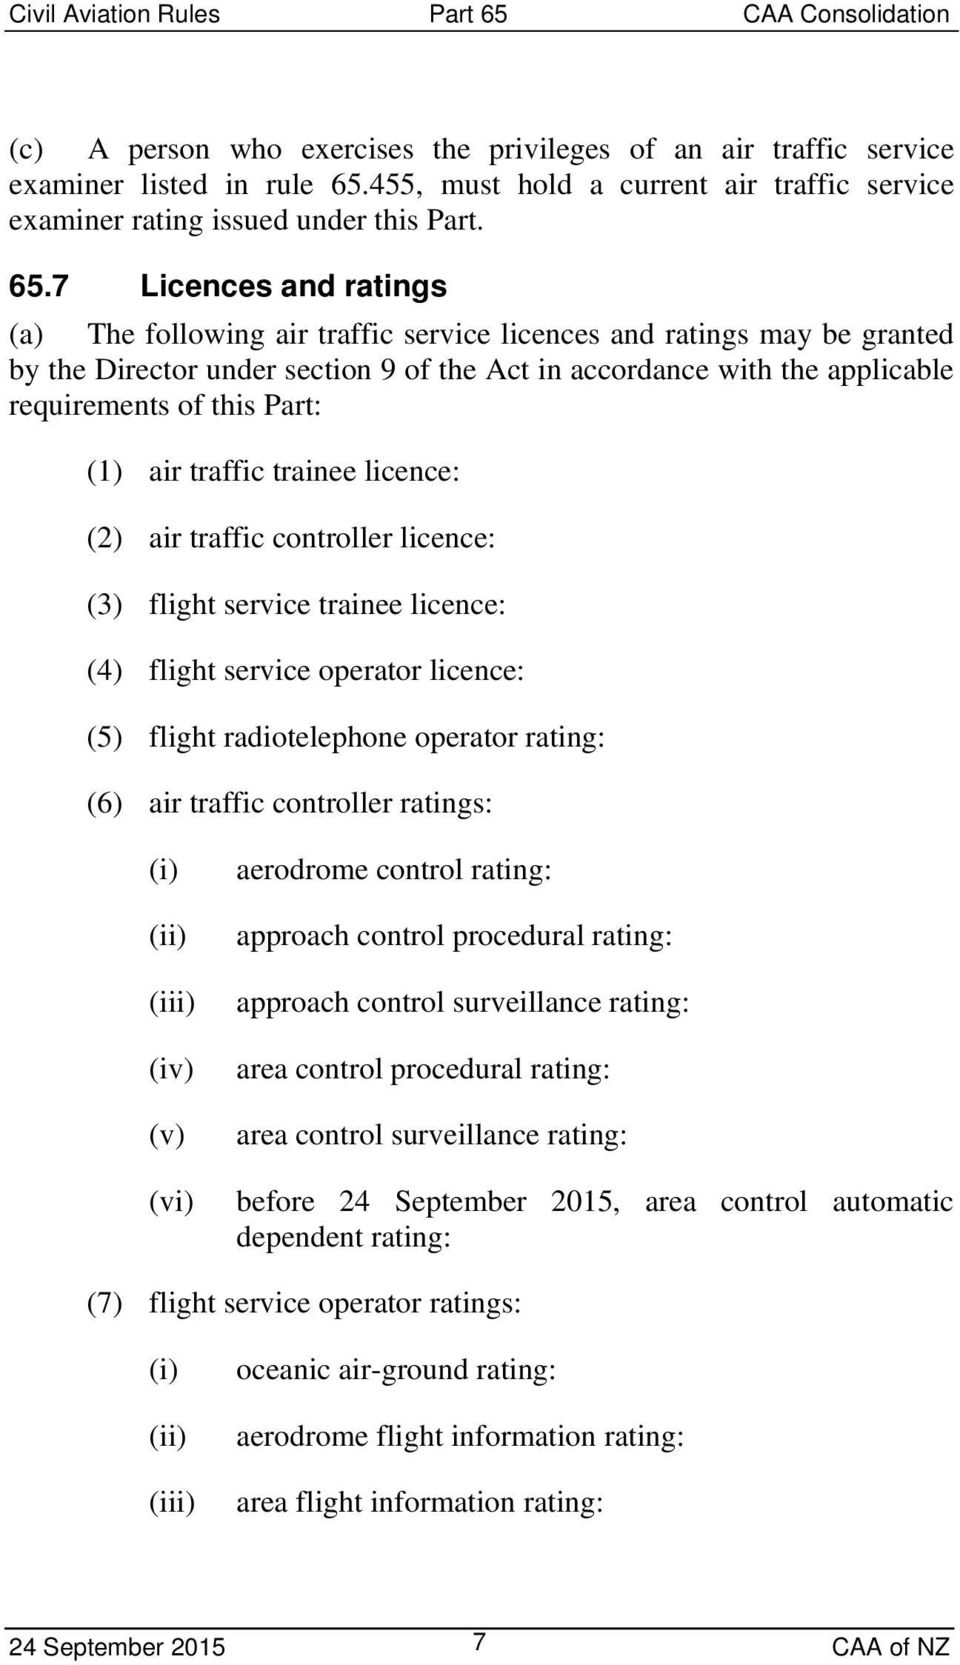 7 Licences and ratings (a) The following air traffic service licences and ratings may be granted by the Director under section 9 of the Act in accordance with the applicable requirements of this